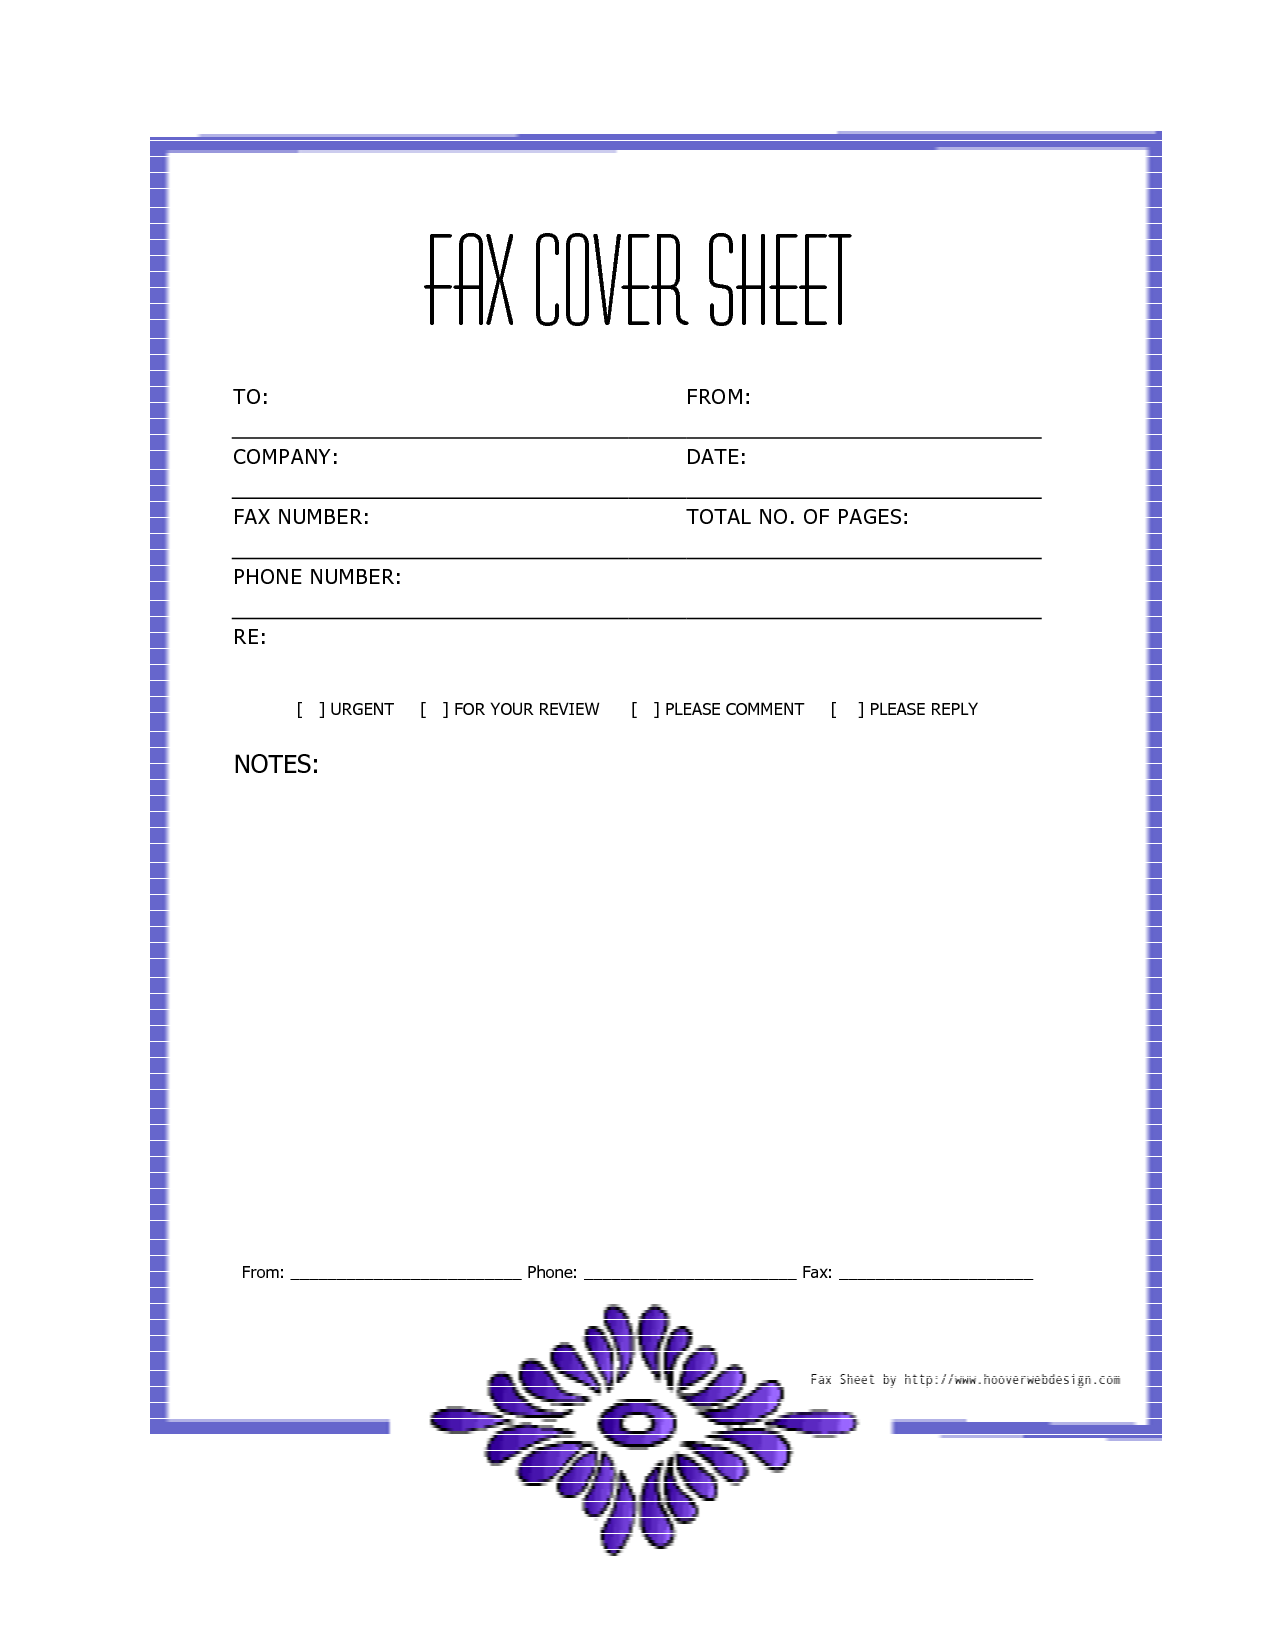 Free Downloads Fax Covers Sheets | Free Printable Fax Cover Sheet Template  Elegant   Download As  Fax Cover Sheet Download